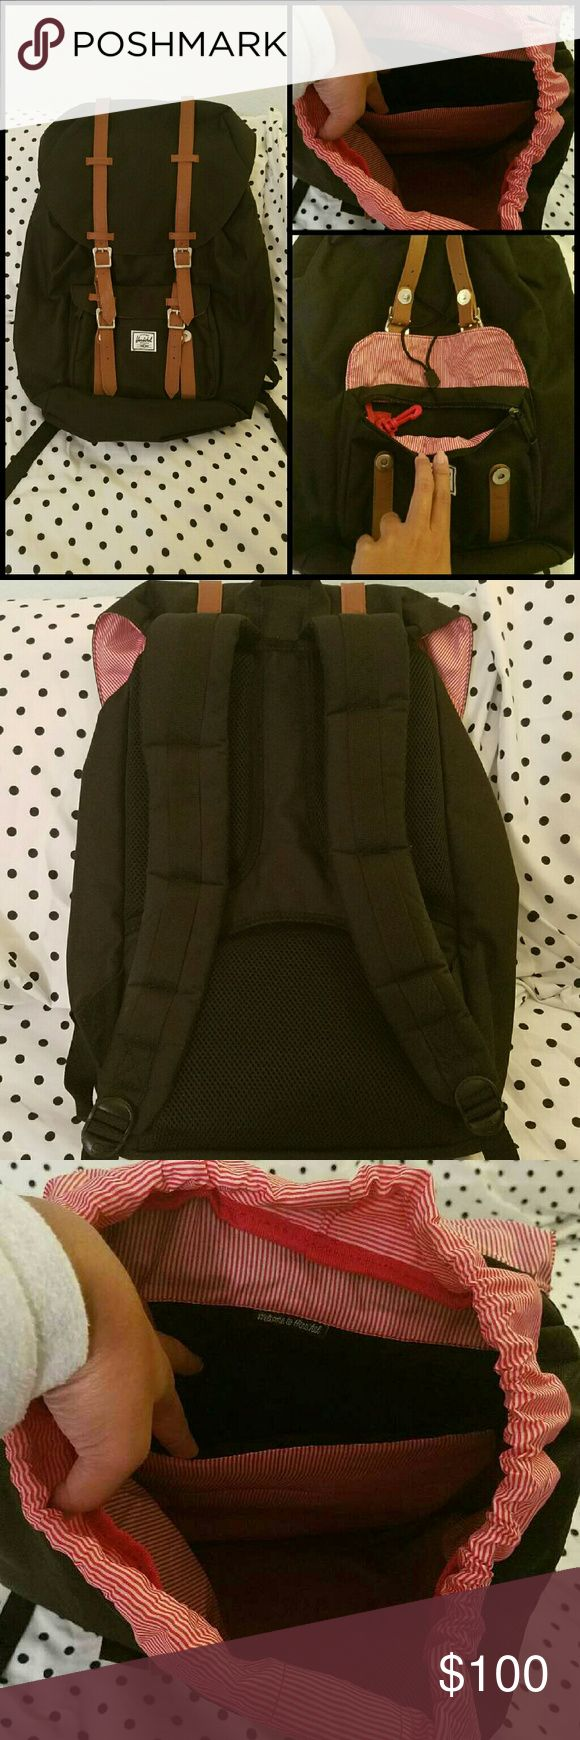 Herschel Backpack Used once to travel. In great condition, only has creasing due to storage.  Price Firm.  Sorry no trades, holds over 24 hours, and payments outside of Poshmark. Herschel Supply Company Bags Backpacks